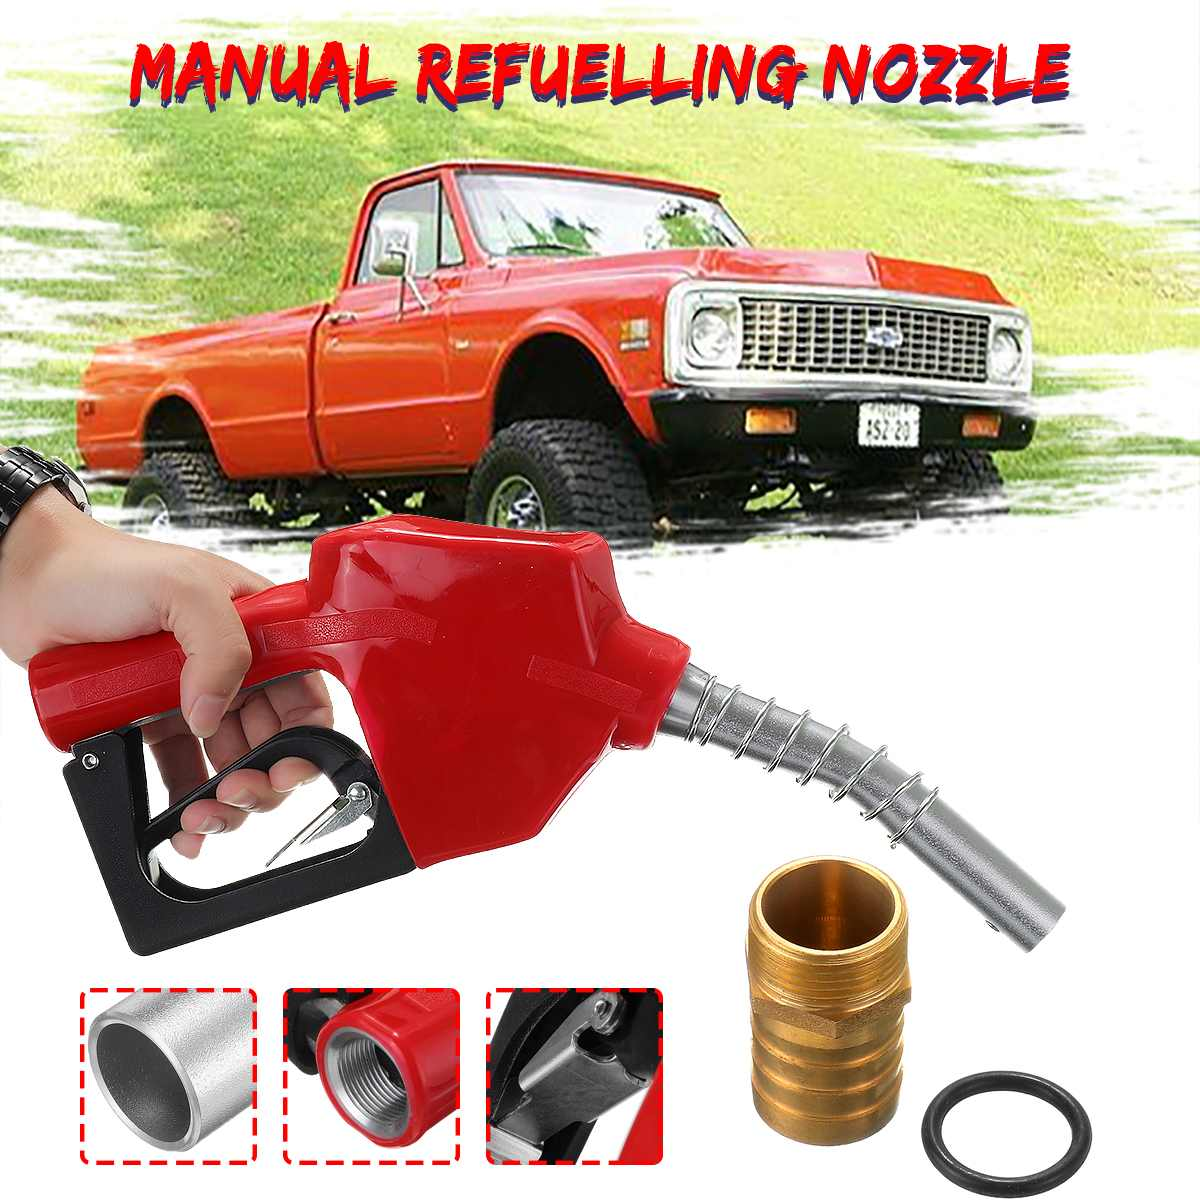 refilling nozzle gun Automatic Cut off Fuel Refilling Nozzle Diesel Oil Dispensing Oil Water Refueling Gun